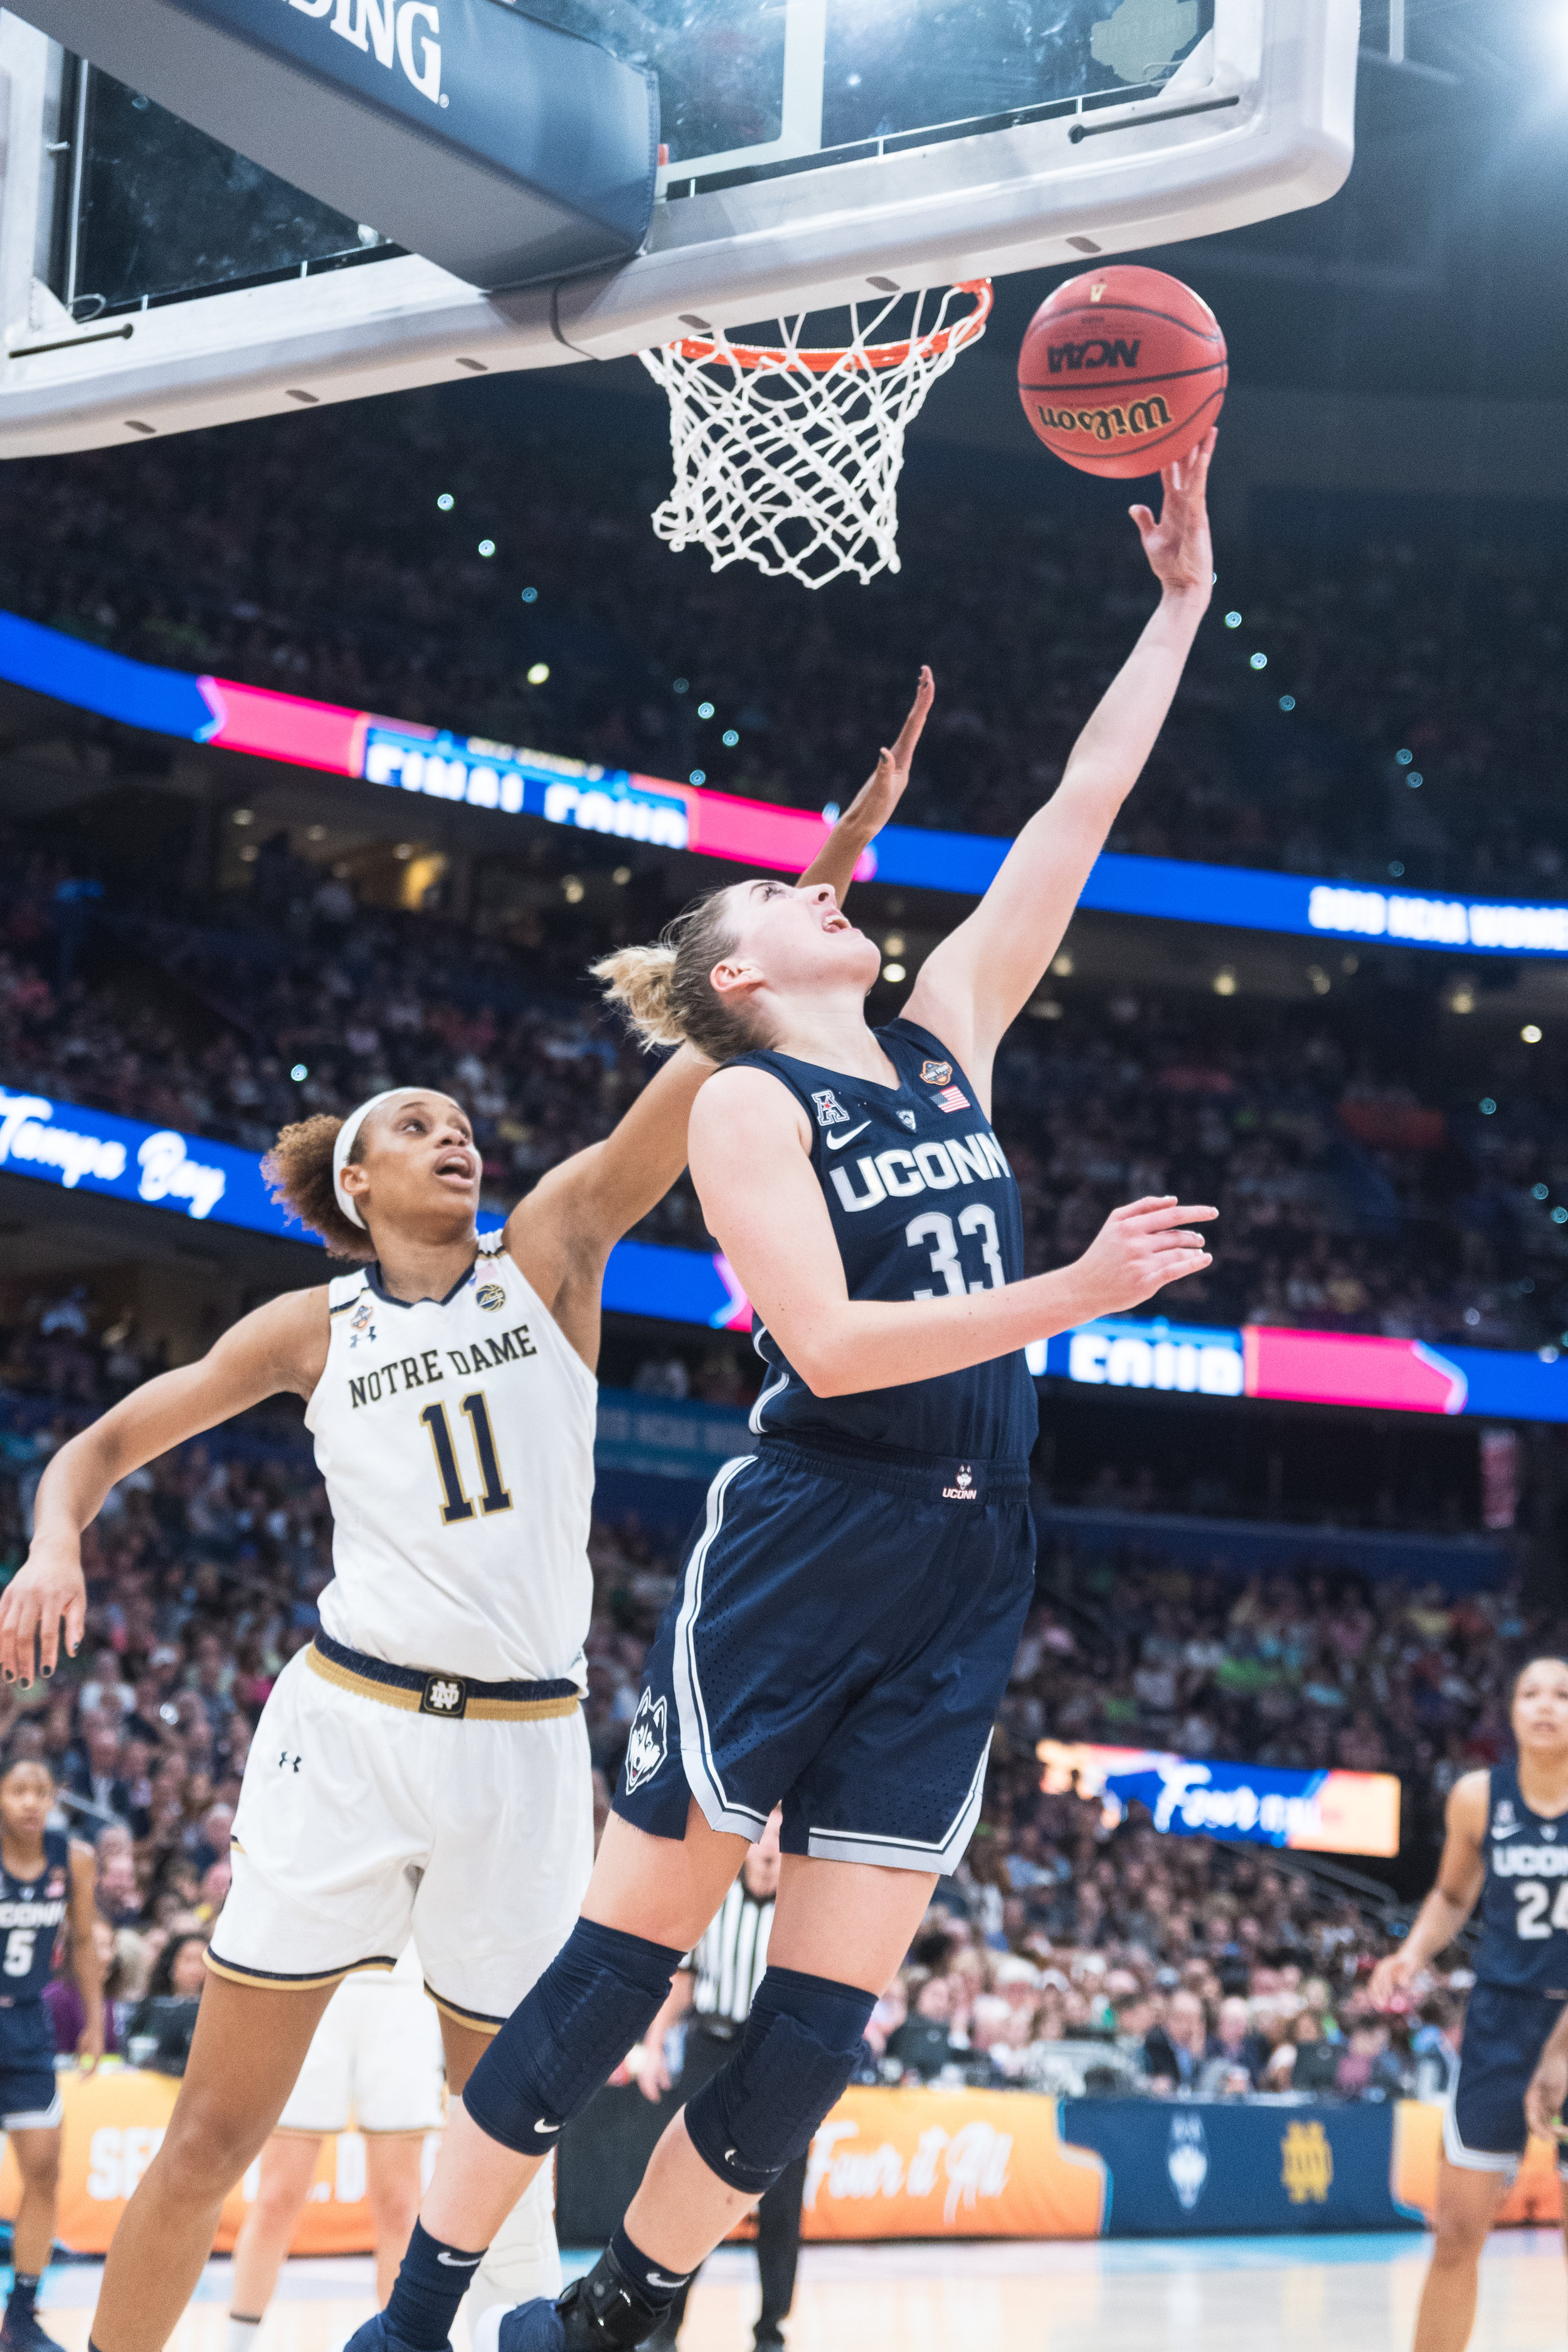 Katie Lou Samuelson is finishing her rookie season with the Chicago Sky; here she is playing for UConn during the Final Four in 2018.  Photos by Charlotte Lao / Photo Editor, The Daily Campus.